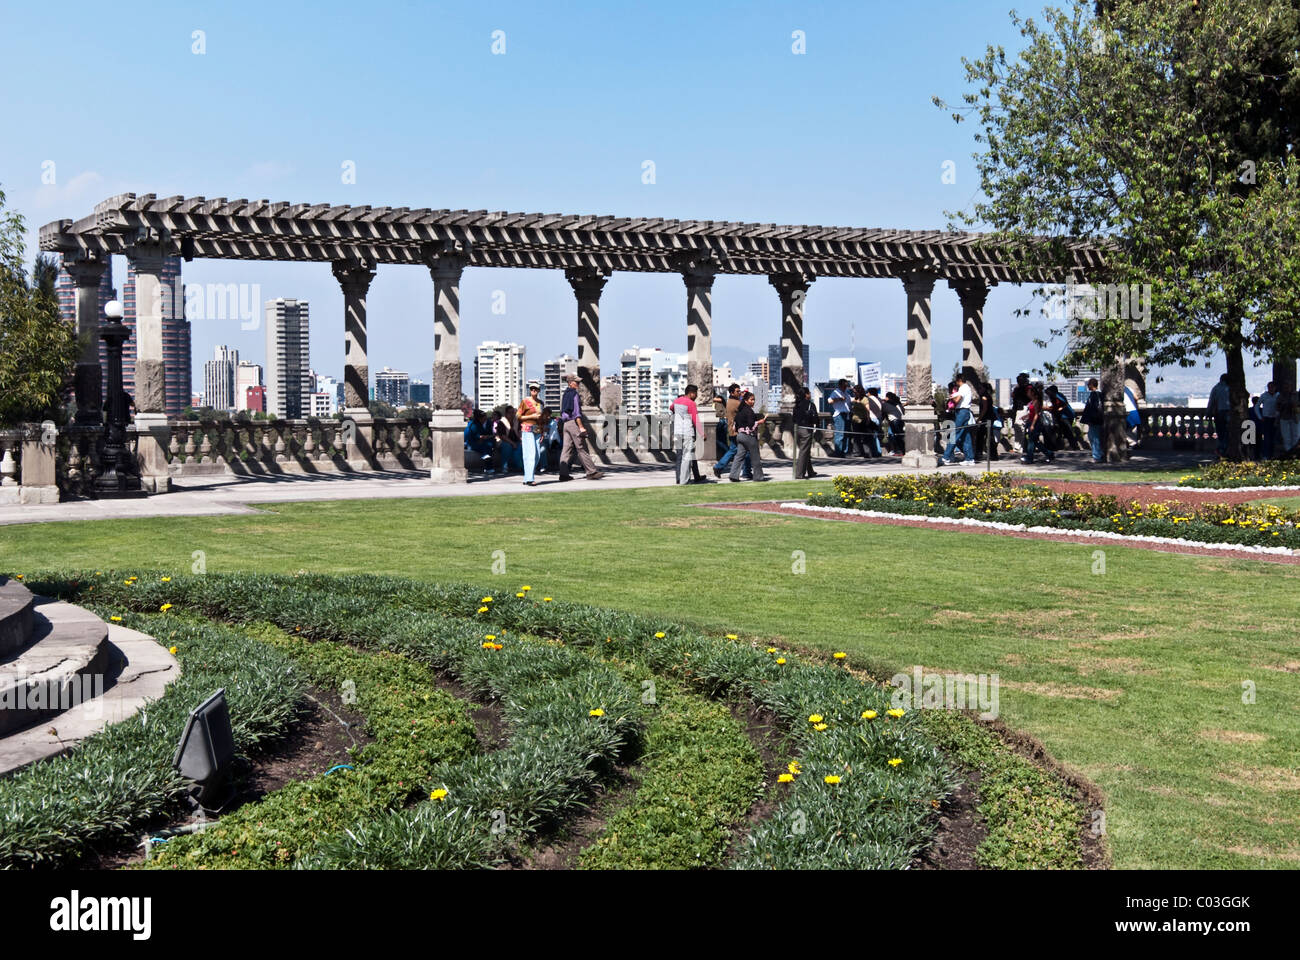 Chapultepec Castle garden green lawn parterre & magnificent view of modern Mexico City skyline from trellised - Stock Image